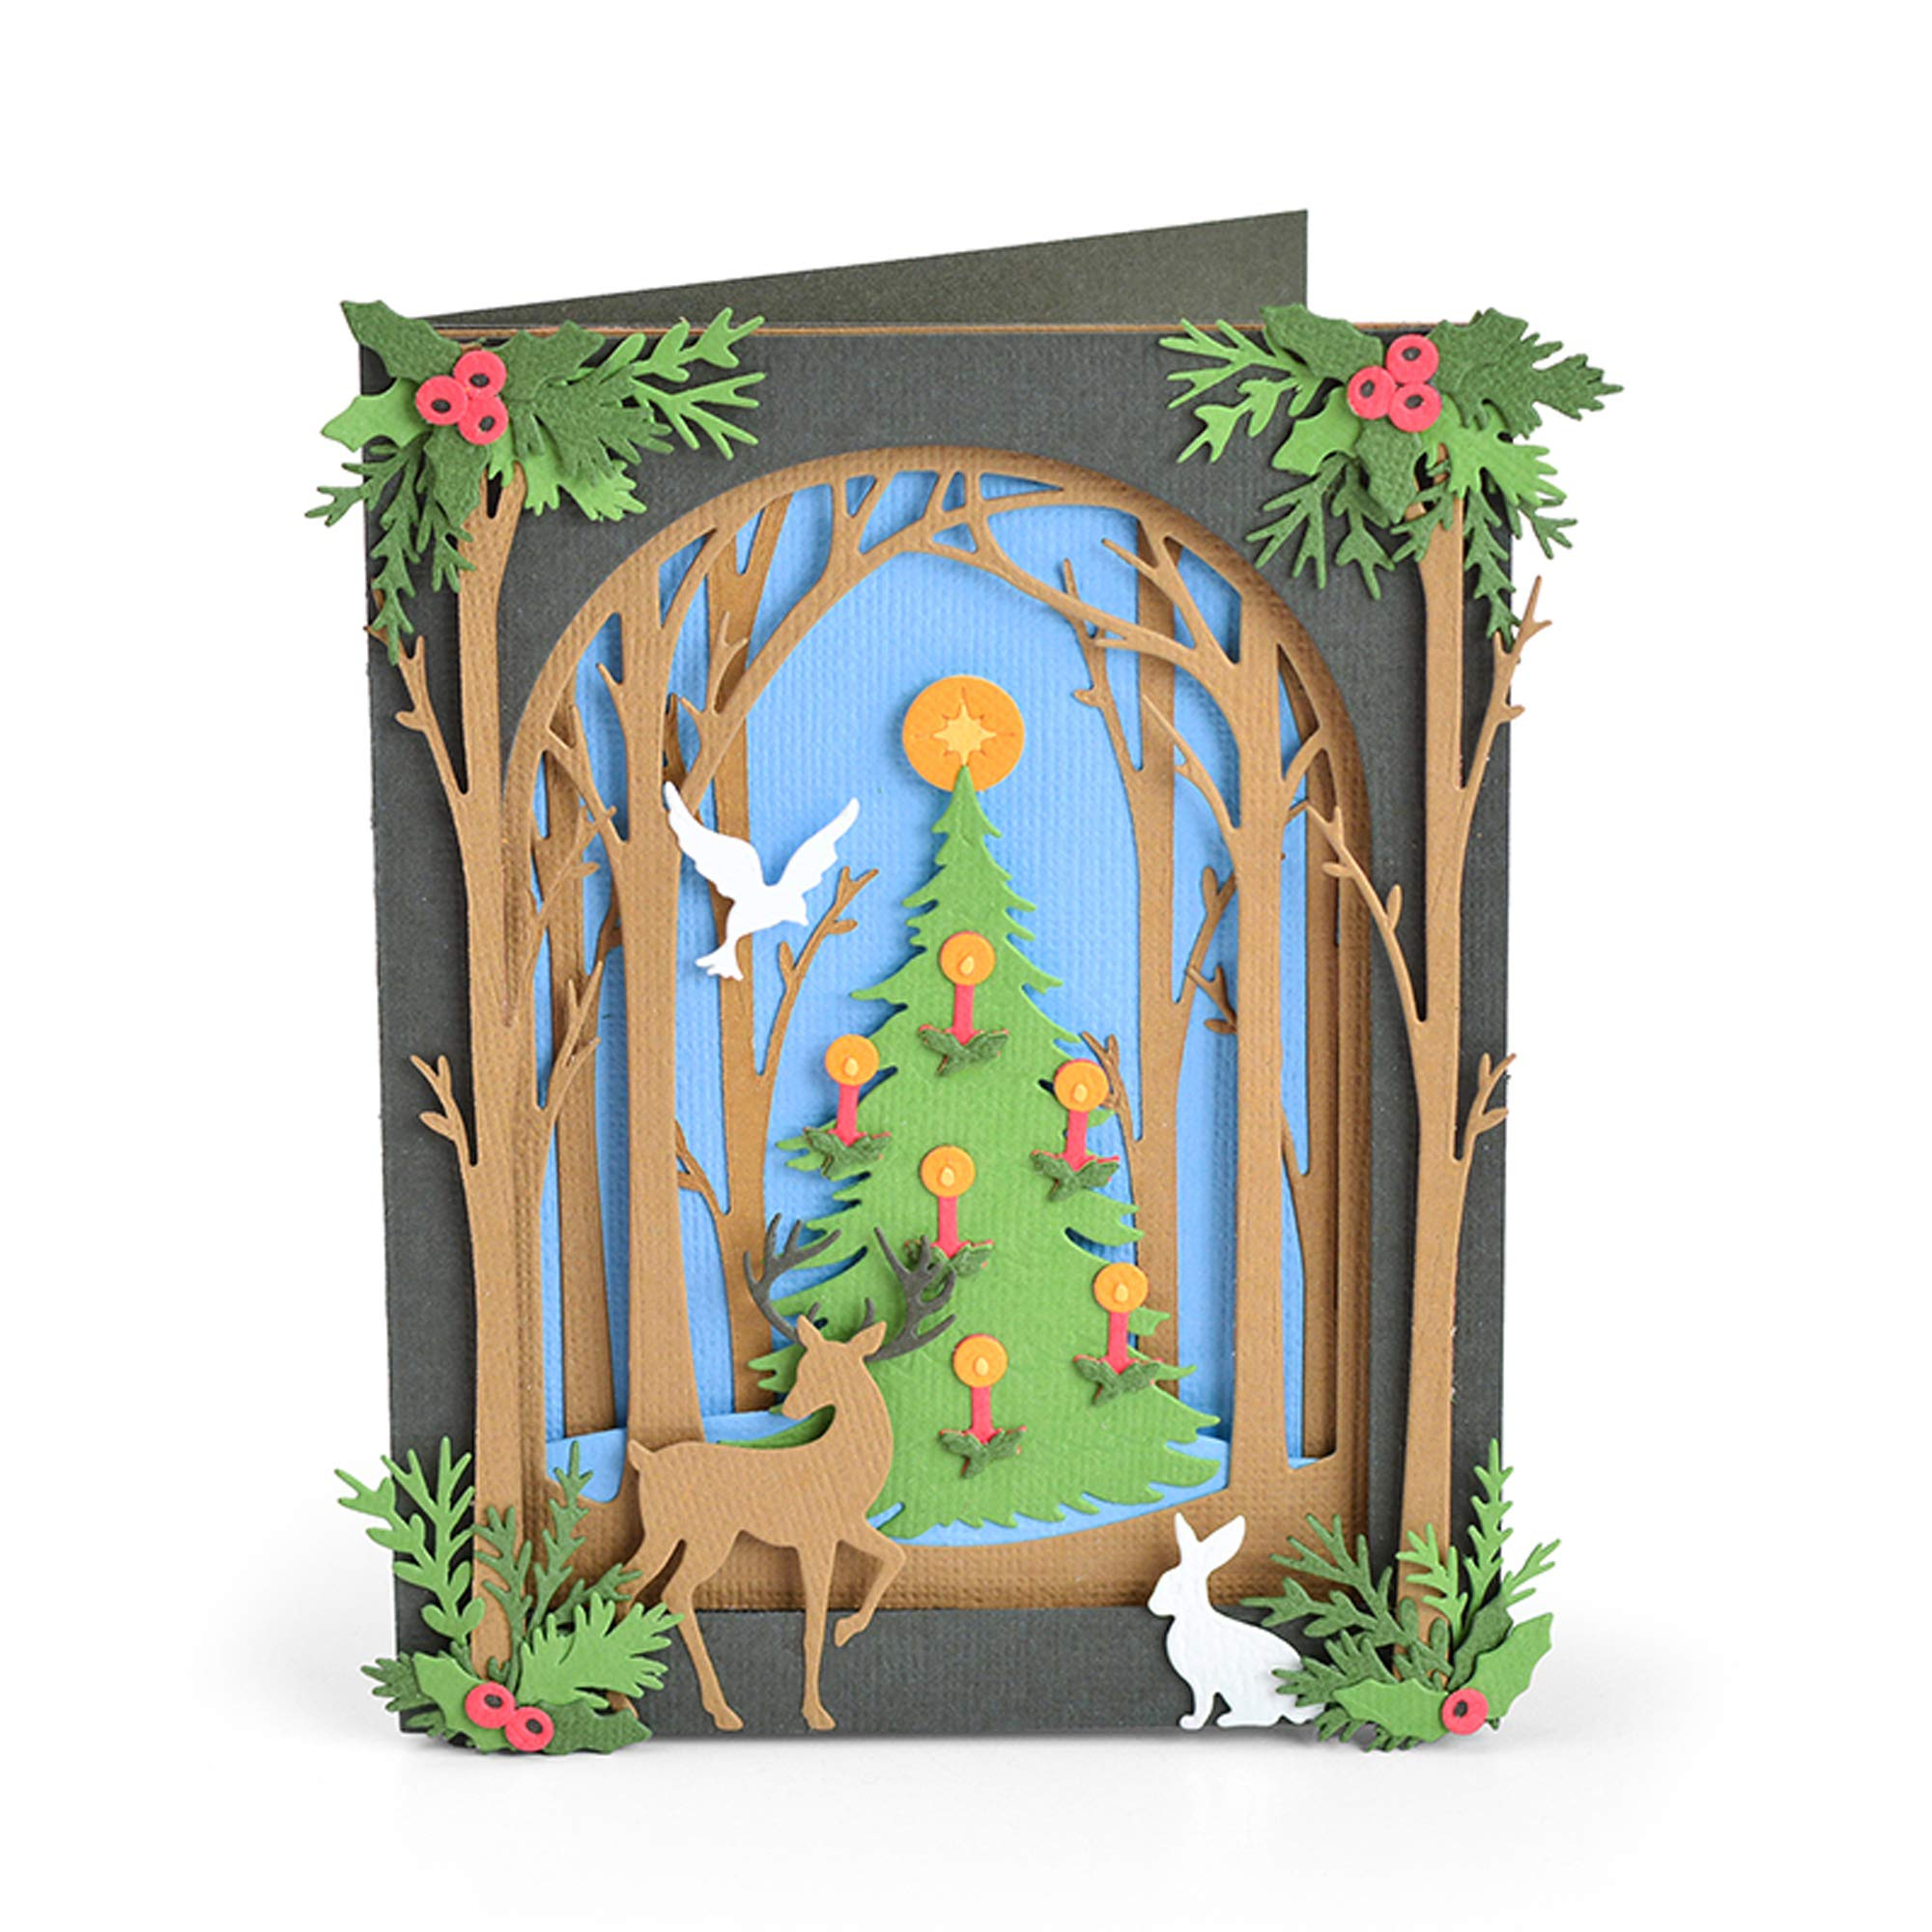 Sizzix 663611 Christmas Shadow Box by Courtney Chilson Dies, us:one Size, Multicolor